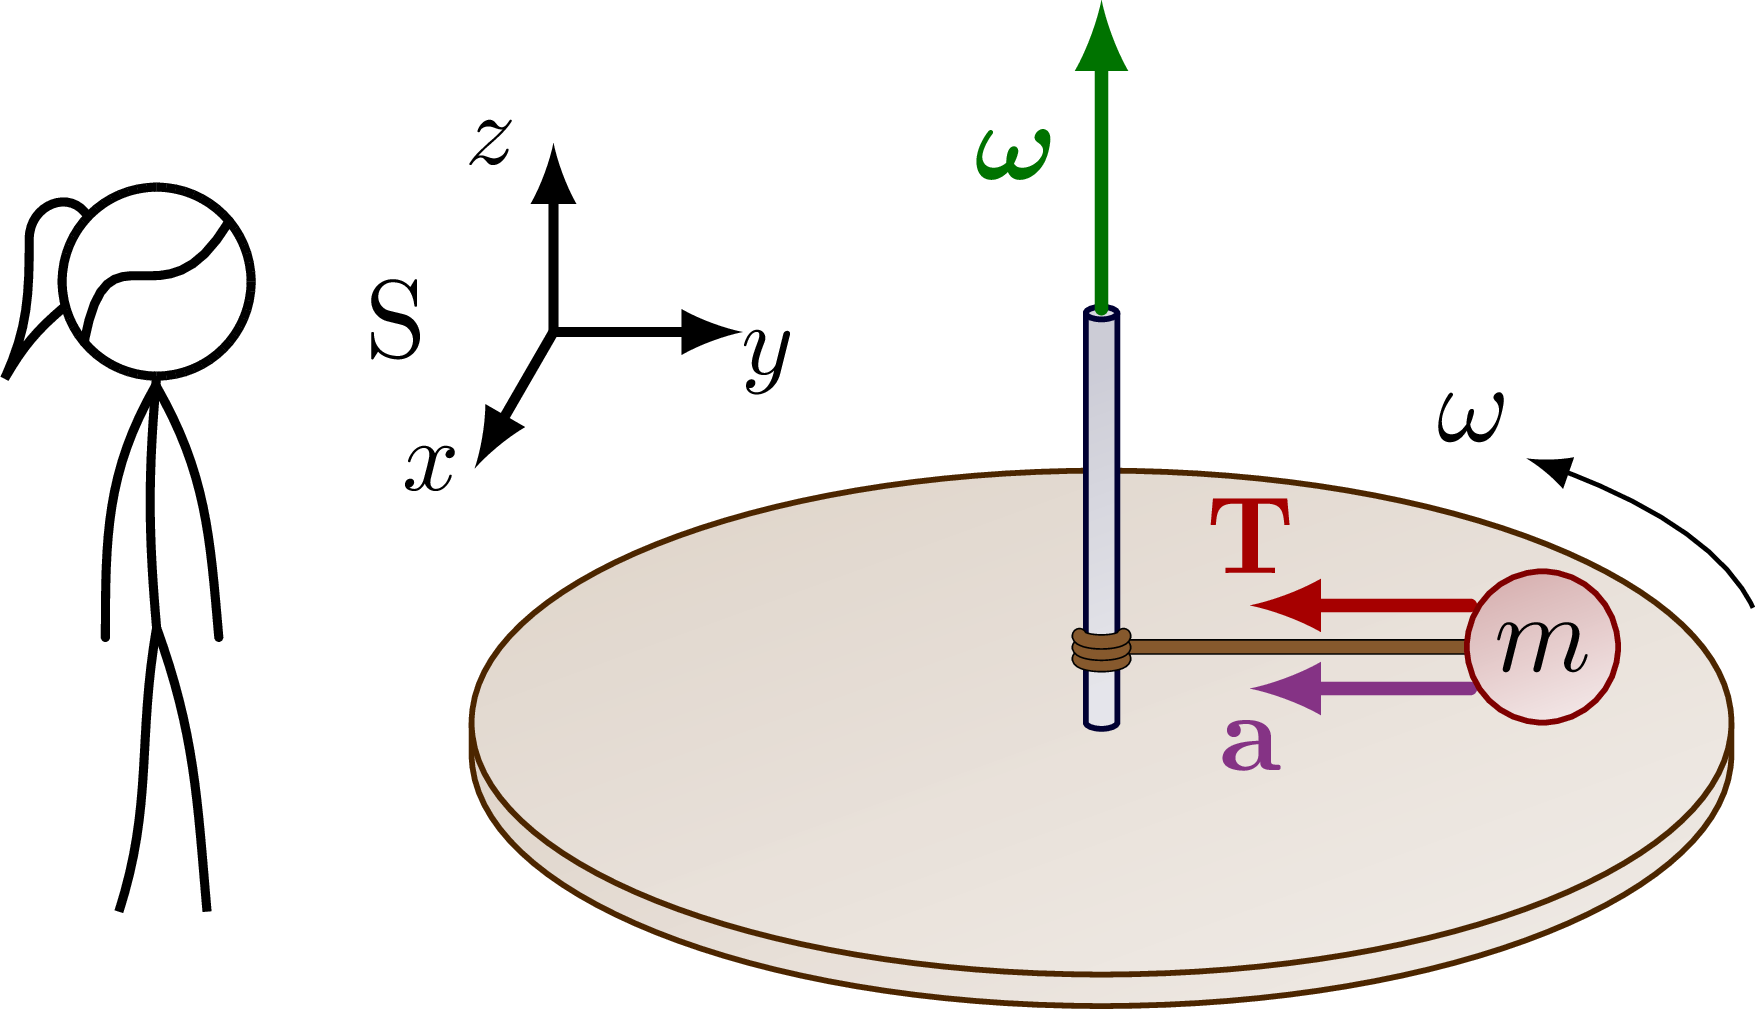 reference_frame_rotational-003.png